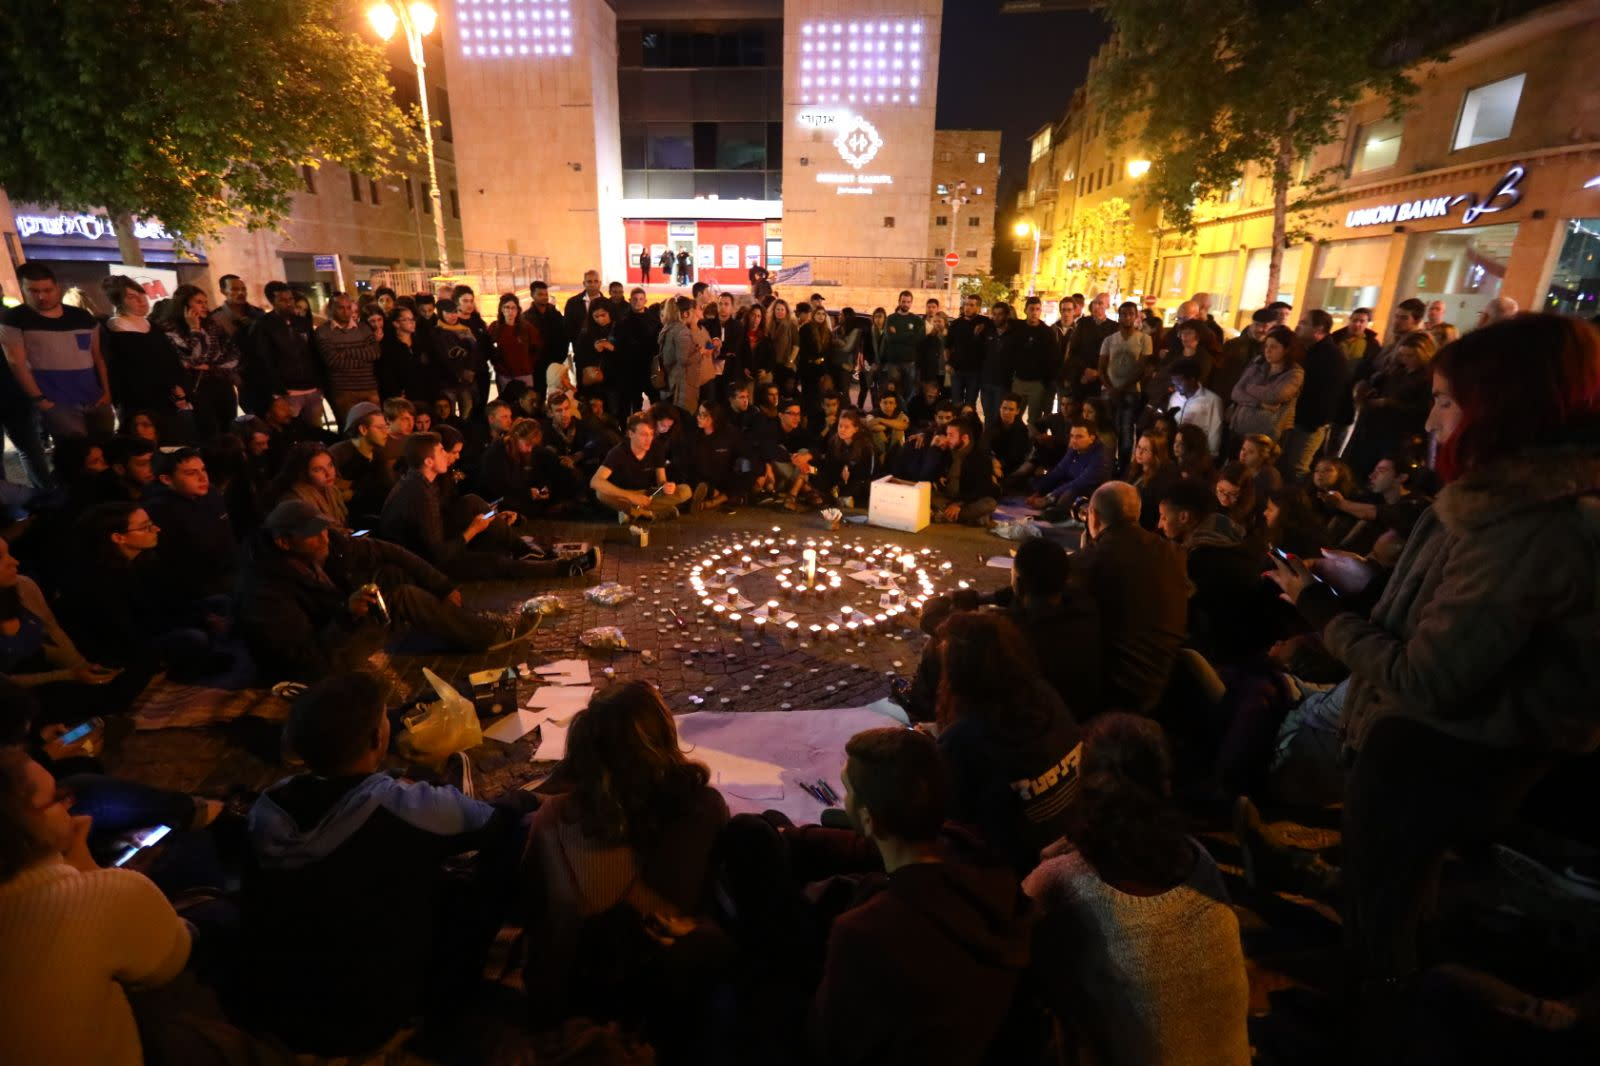 Hundreds of teenagers gathering in circles Jerusalem's Zion Square, in memory of those killed in the Tzafit canyon flood disaster. (YITZHAK KELMAN/TPS)